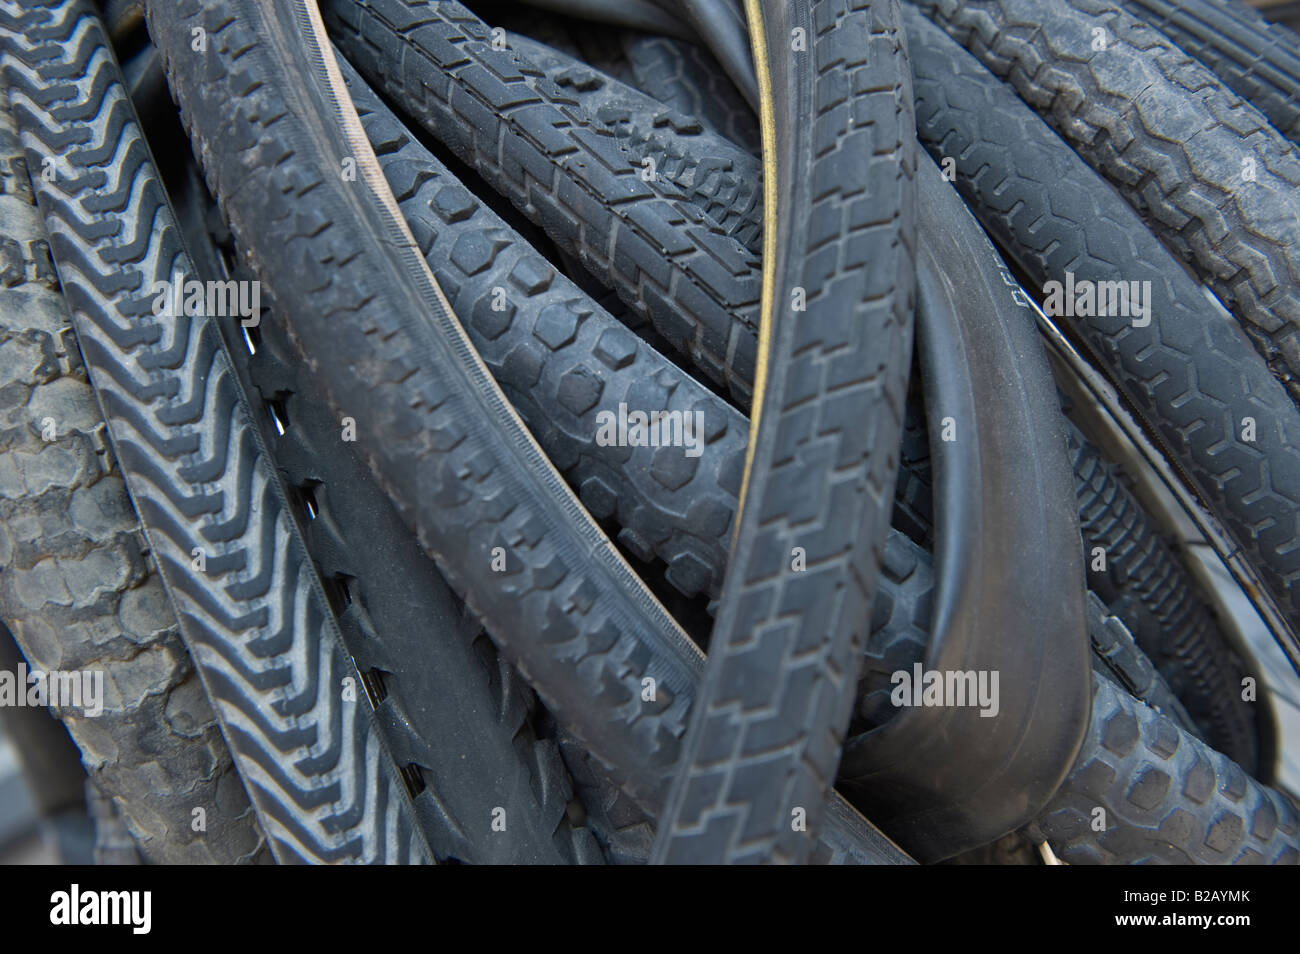 Bicycle tyres - Stock Image